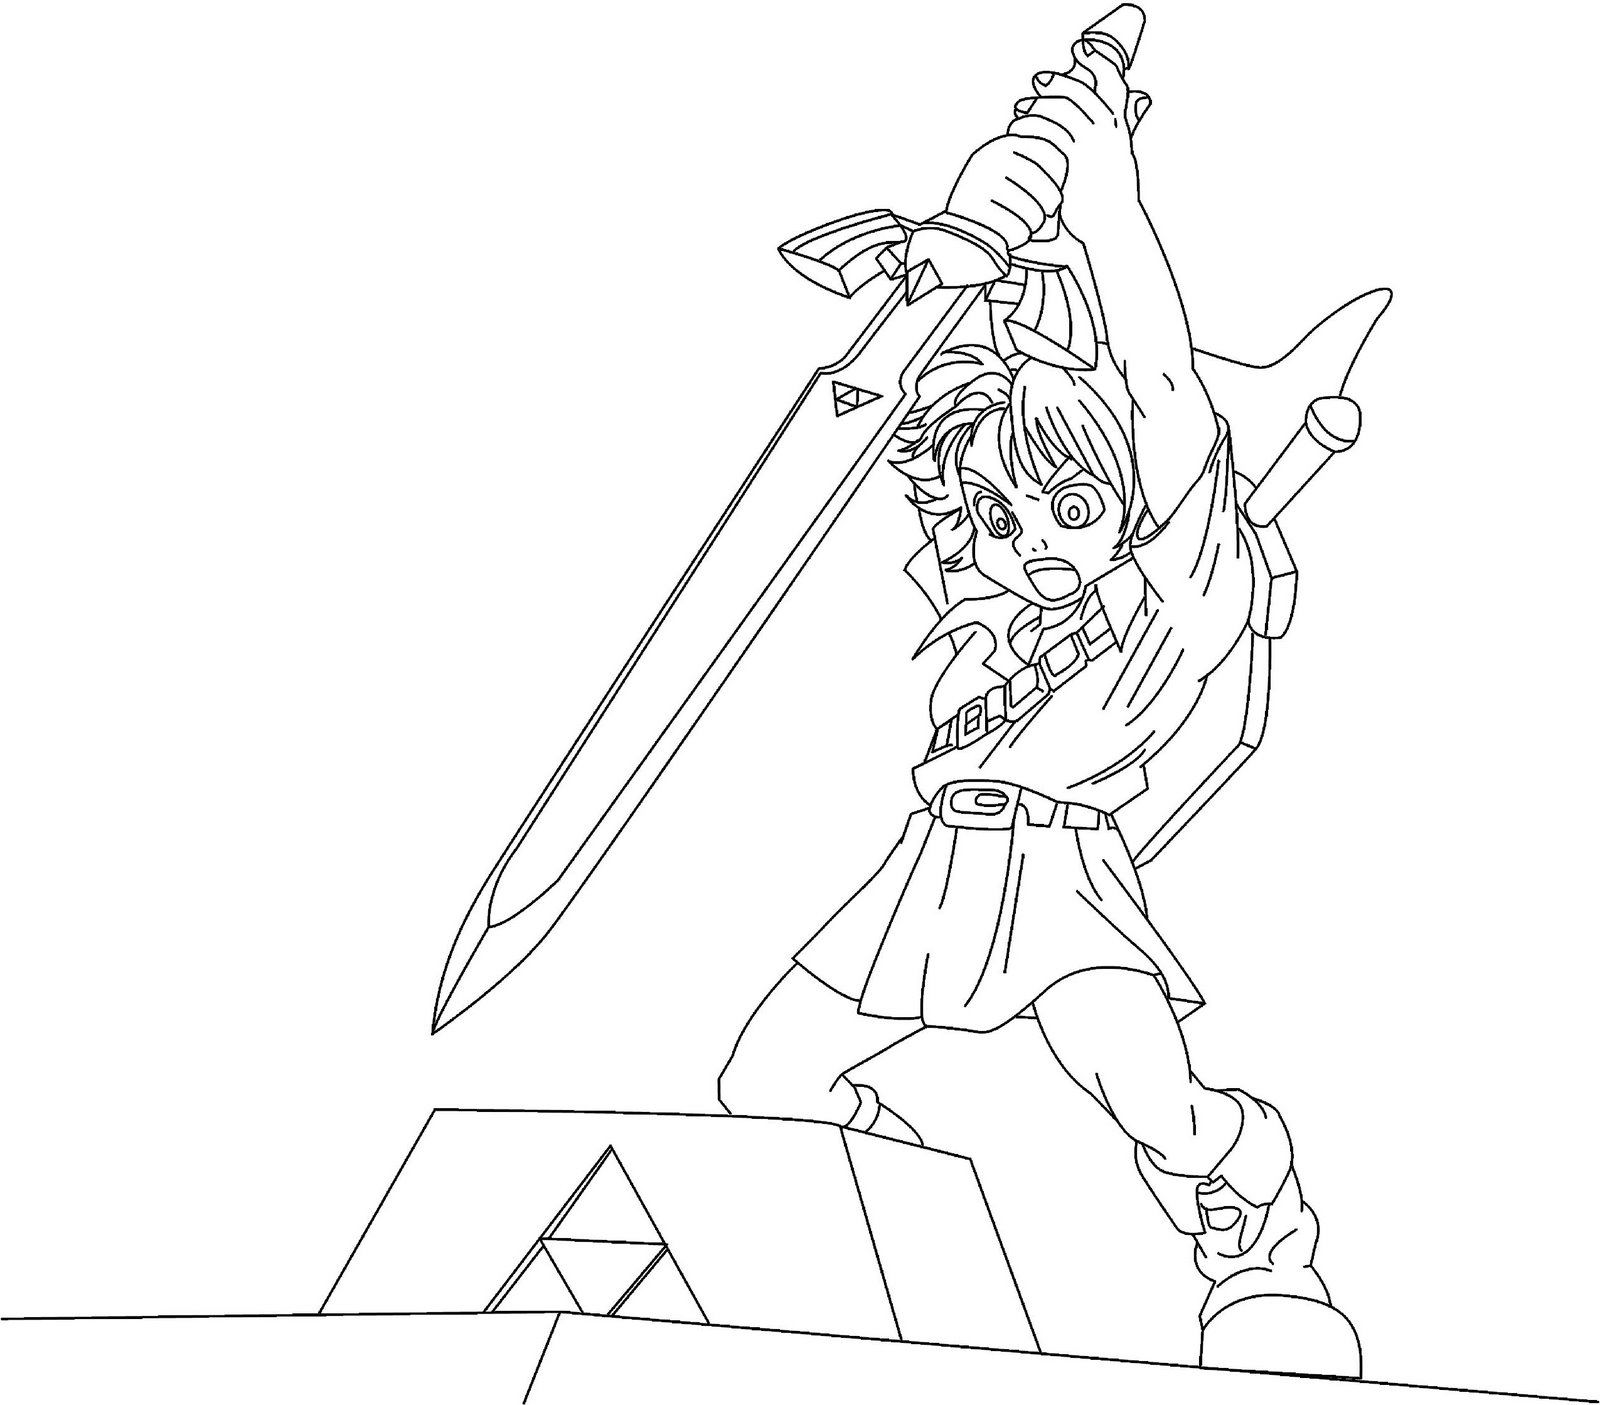 Generic princess coloring pages - Princess Zelda Coloring Pages Zelda Coloring Pages To Print Download